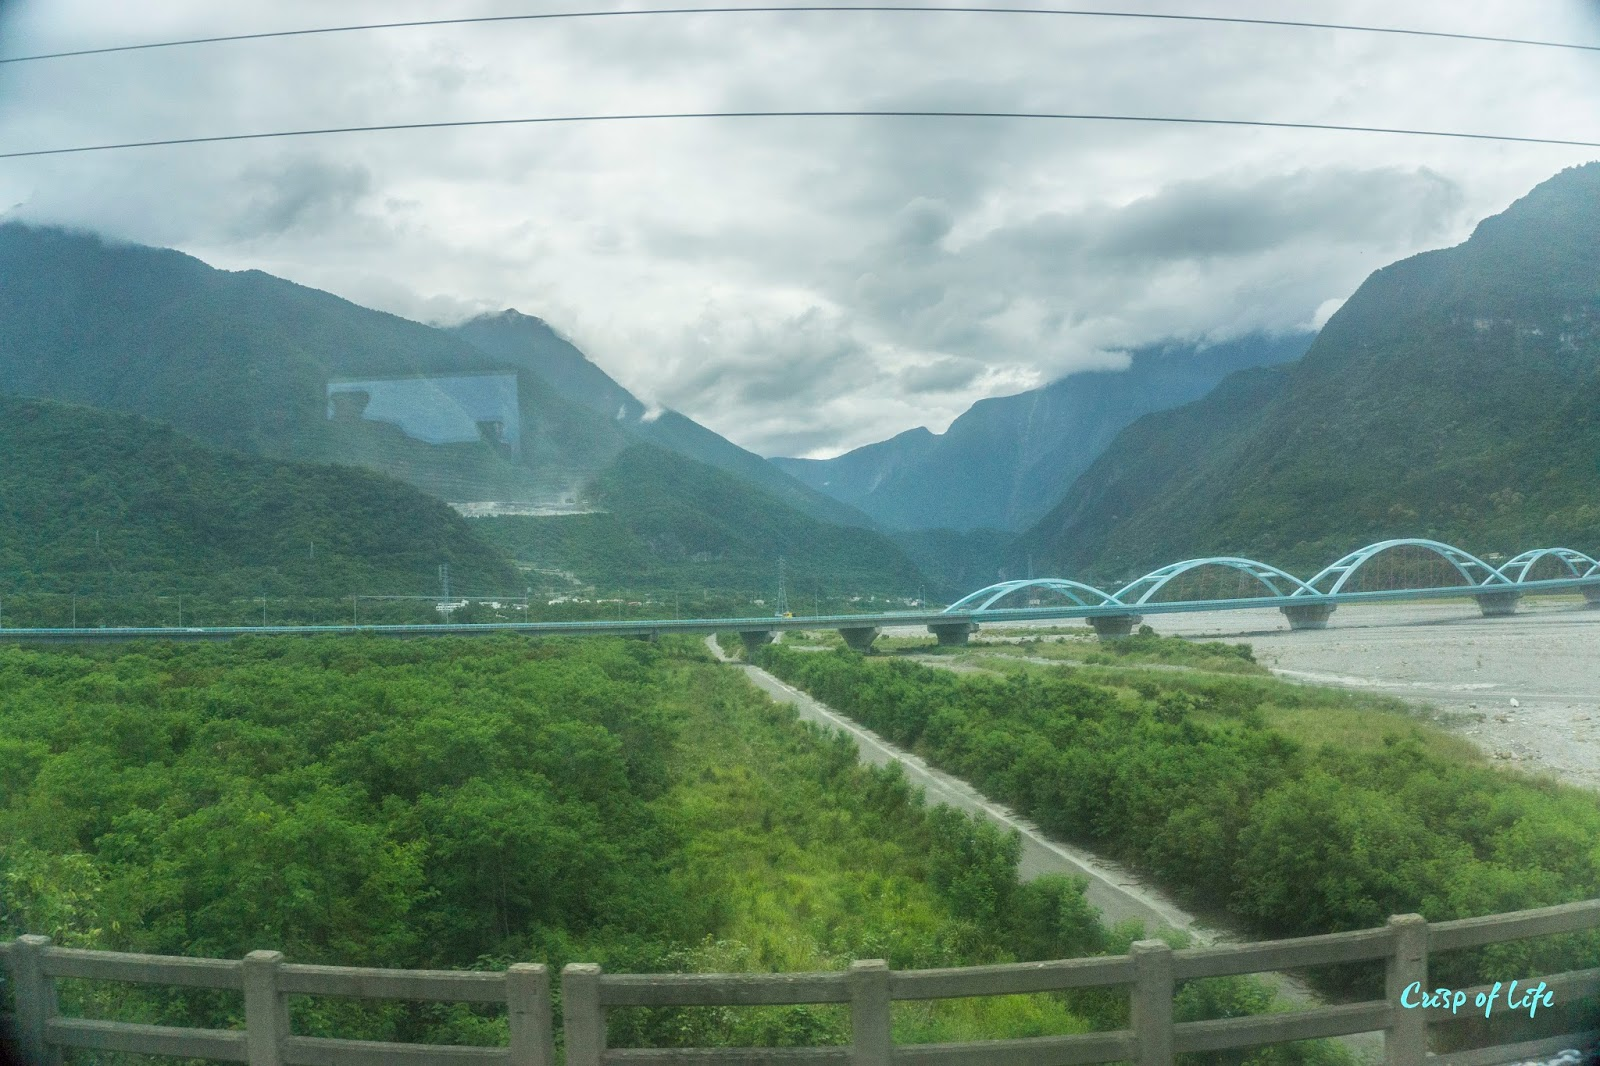 [HUALIEN 花莲] Day 6: Go to Hualien via Train, Cycling to Chishingtan Beach, Yuan Yeh Ranch 第六天:火车到花莲,骑自行车去七星潭,原野牧场